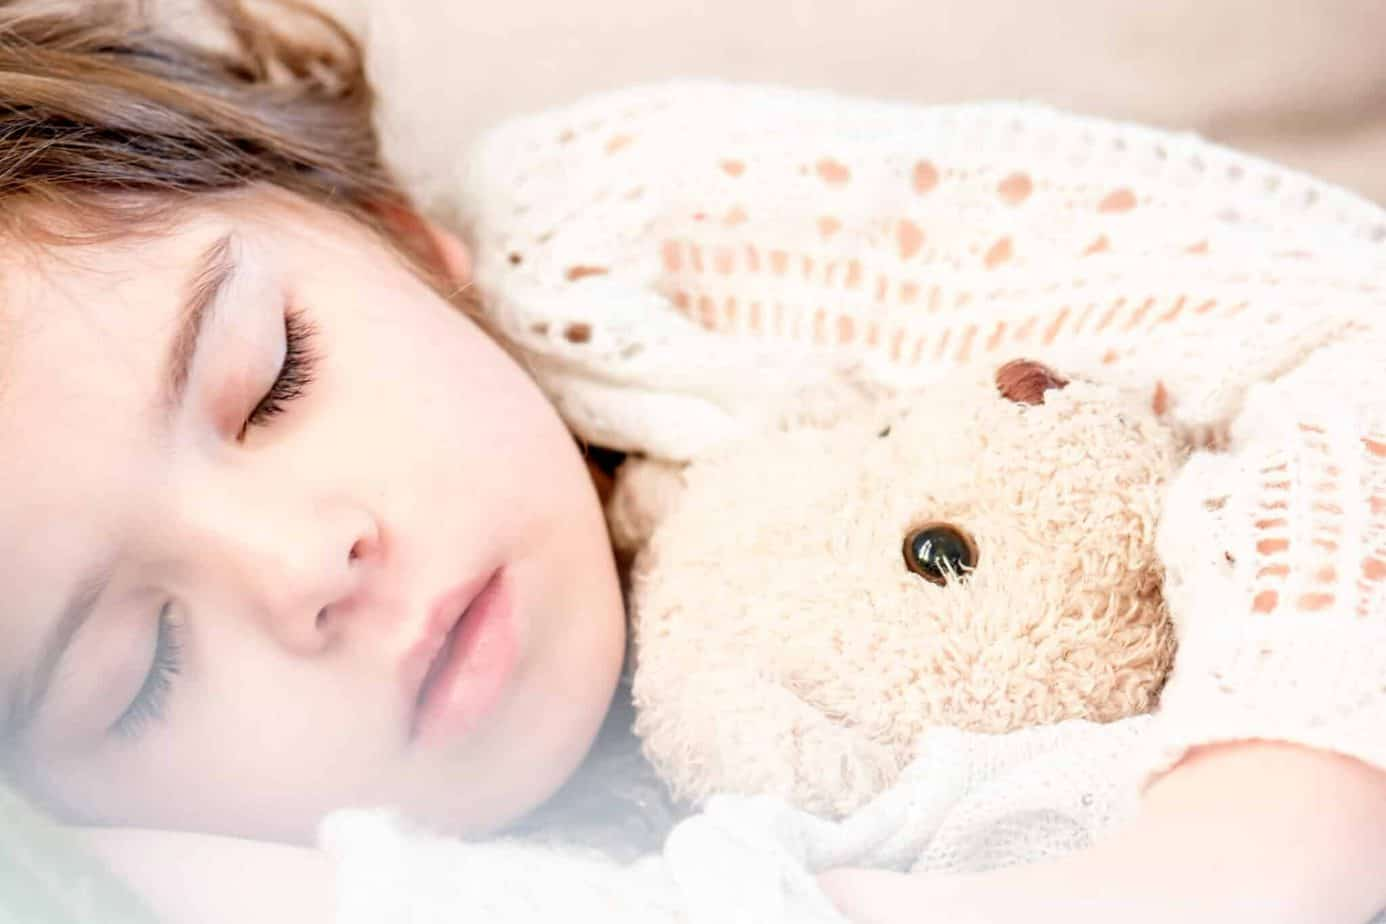 Create A Peaceful And Calm Bedtime Routine To Help Kids Fall Asleep Easier  And Stay Asleep